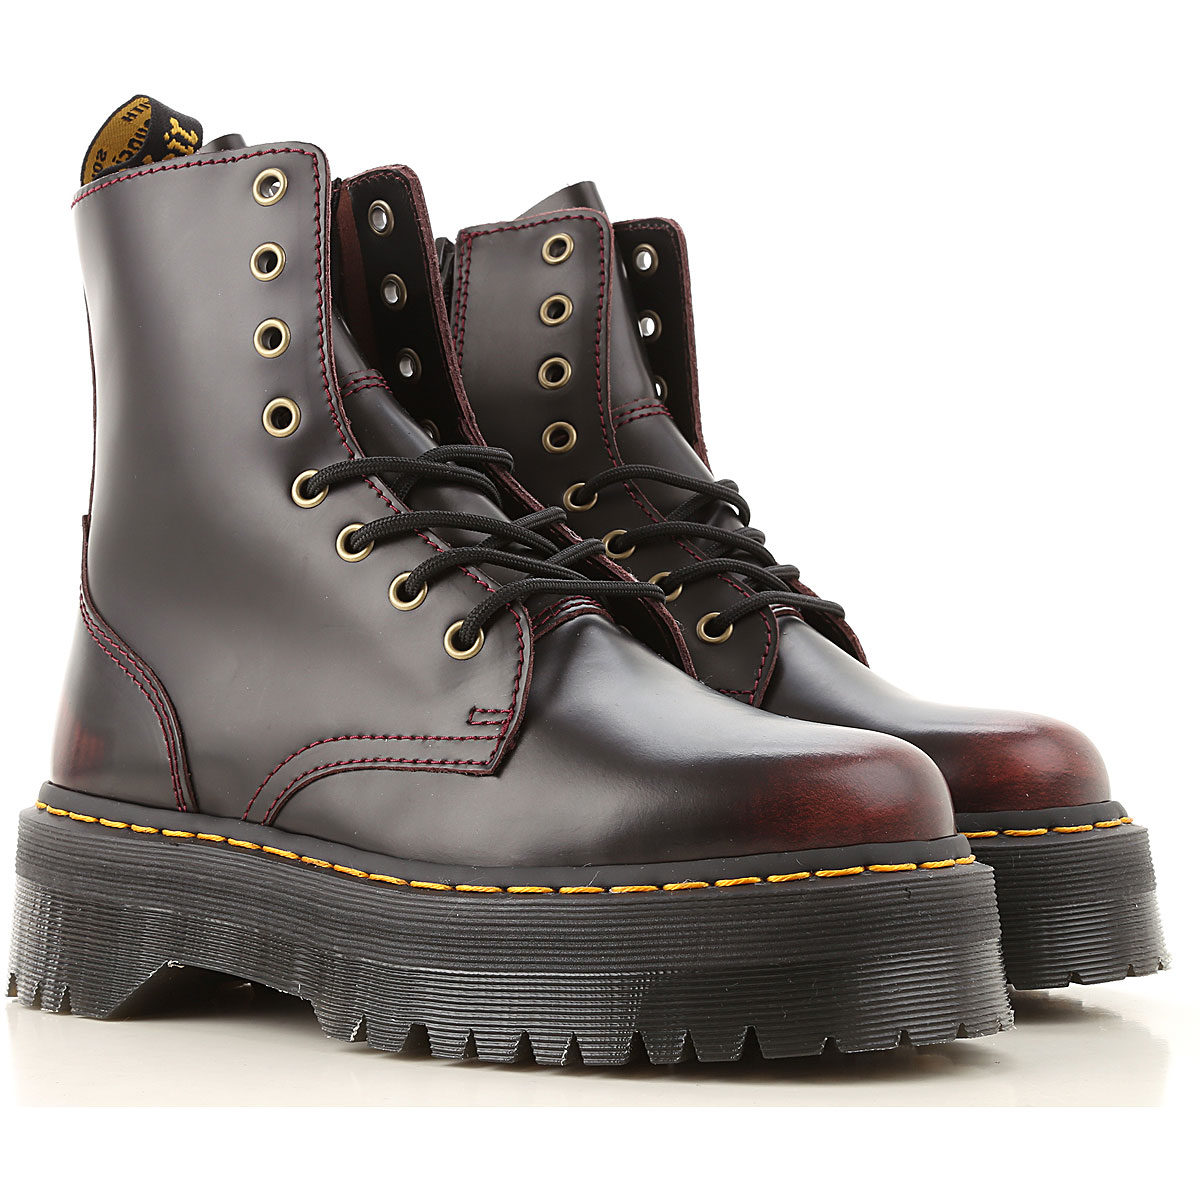 Dr. Martens Boots for Women, Booties On Sale, Black, Leather, 2019, US 8.5 - UK 6.5 - EU 40 US 8 - UK 6 - EU 39 US 7 - UK 5 - EU 38 US 9 • UK 7.5 â€